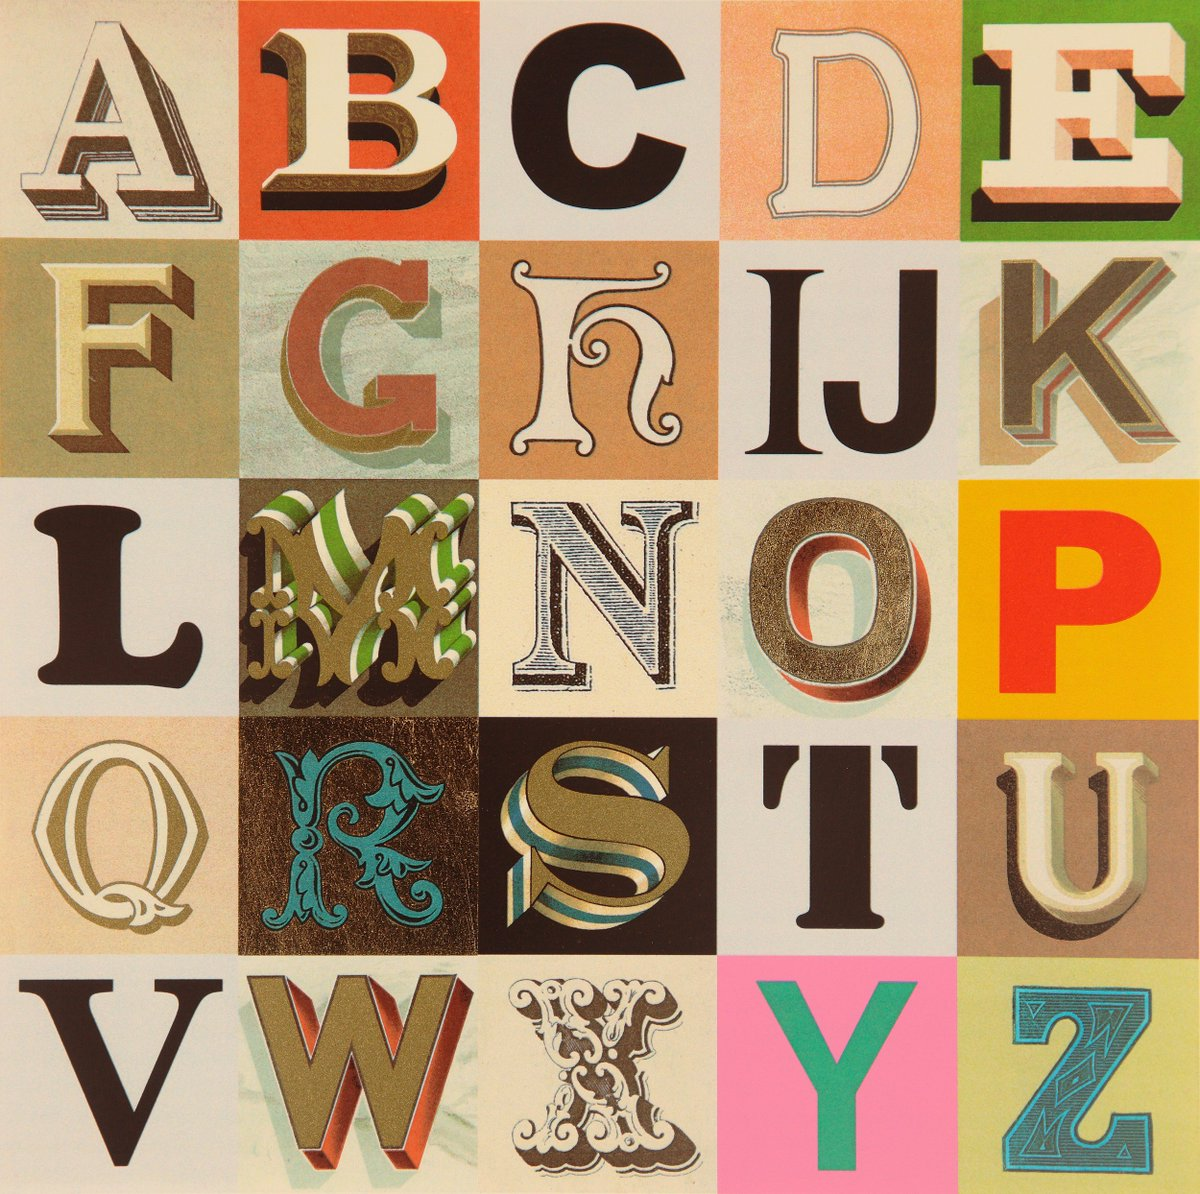 New exhibition announcement! #PeterBlake: Alphabets Letters & Numbers Opens Sat 13 August https://t.co/9awSiRwHgb https://t.co/0z84IGHSv3